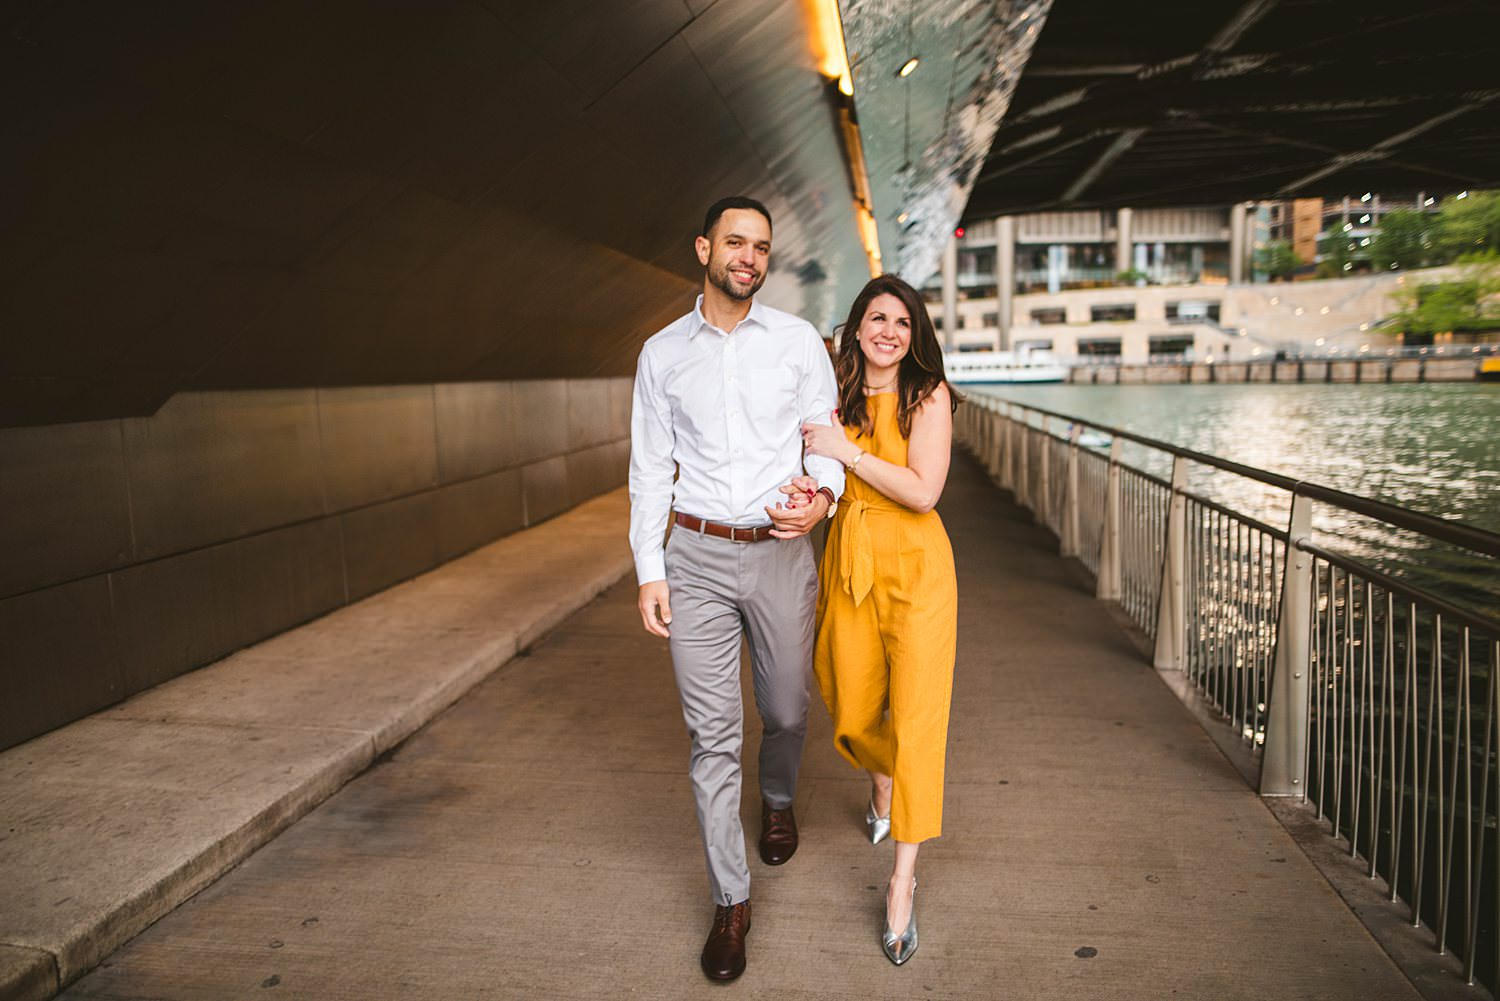 Downtown Chicago Engagement Photos - Museum of Science and Industry Session - Elizabeth and Dan -41.jpg